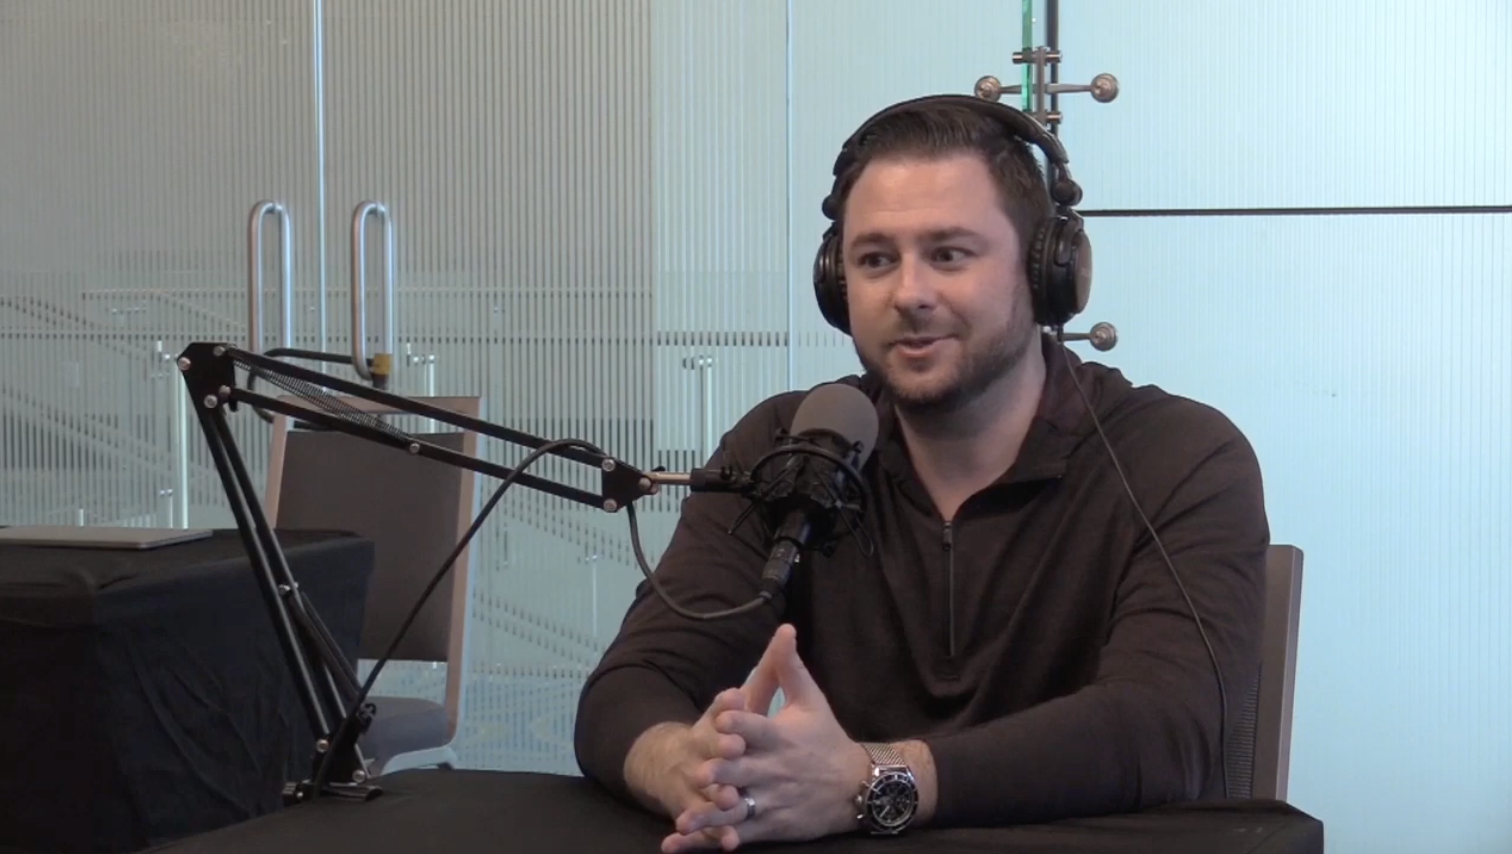 Criminal defense attorney Adam sits at a desk with headphones and a microphone while he's interviewed on a podcast